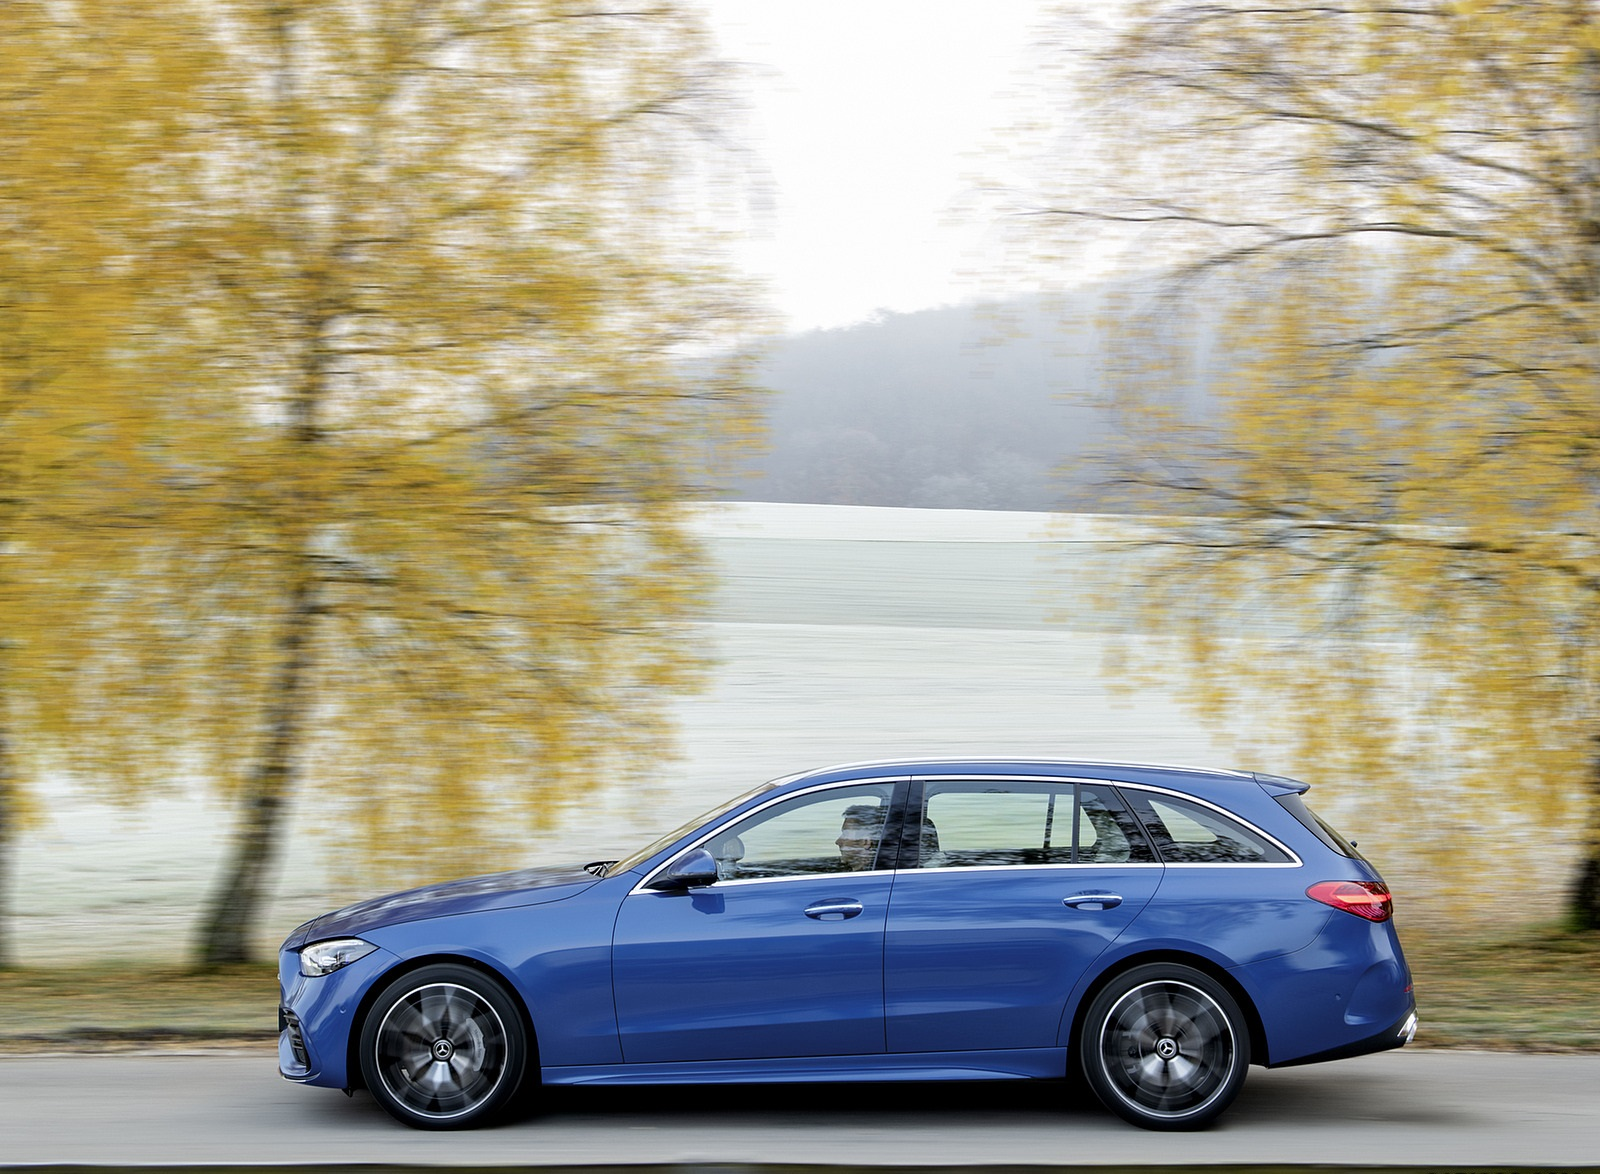 2022 Mercedes-Benz C-Class Wagon T-Model (Color: Spectral Blue) Side Wallpapers (10)